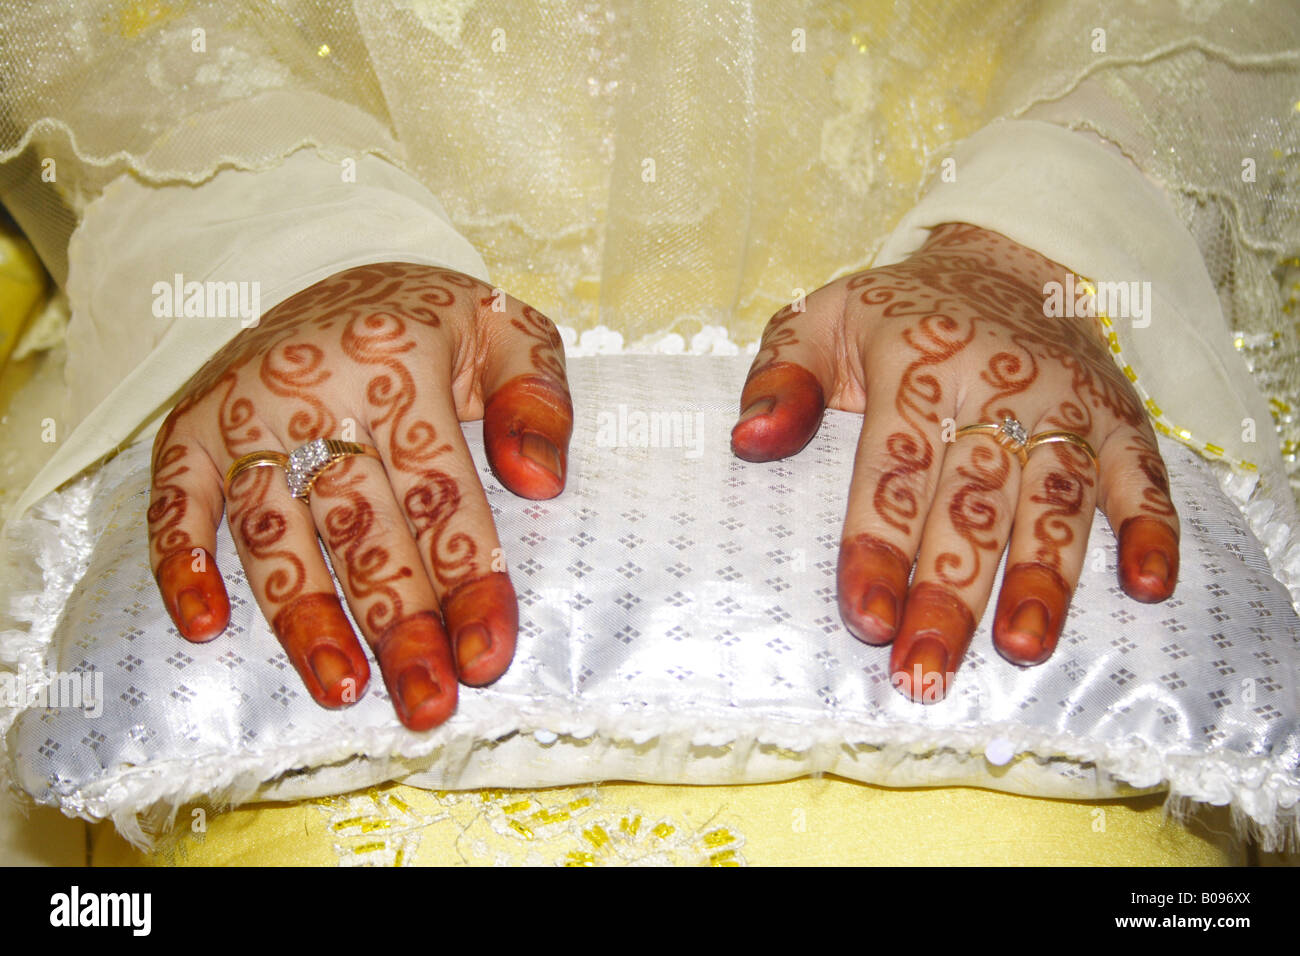 Henna Traditional Hand Painting On Malay Bride S Hands Stock Photo Alamy